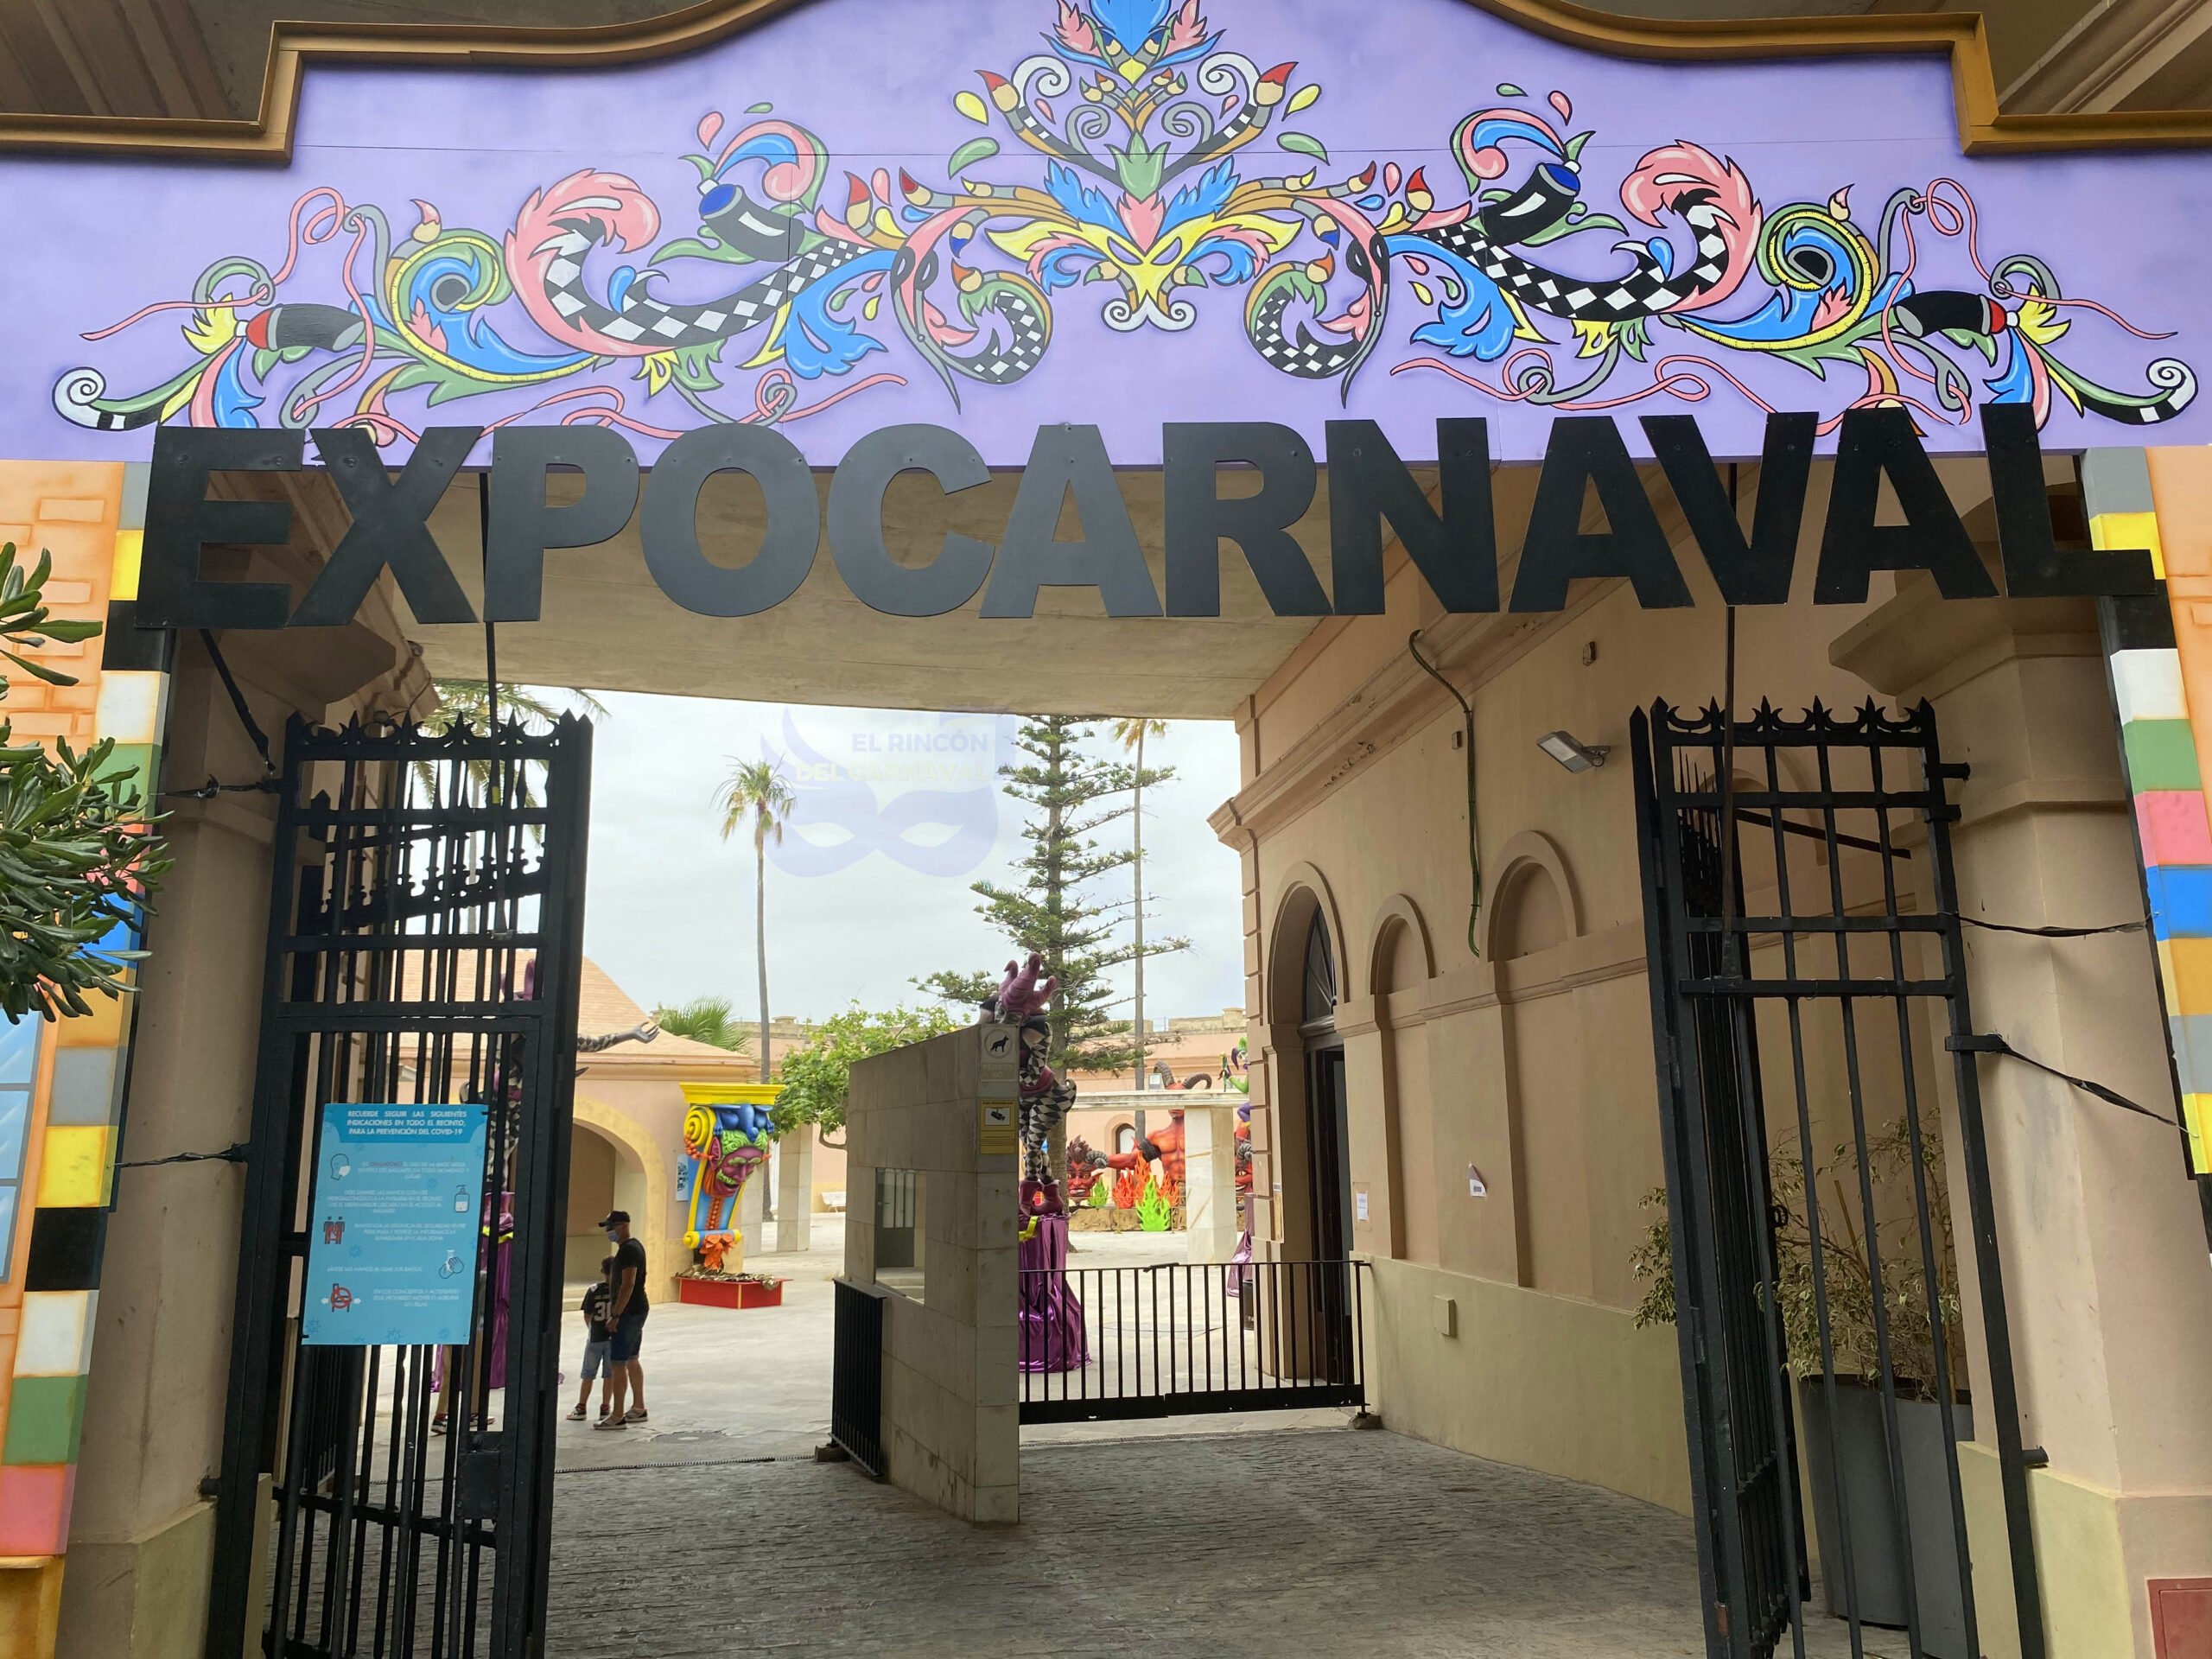 Expo Carnaval 2021